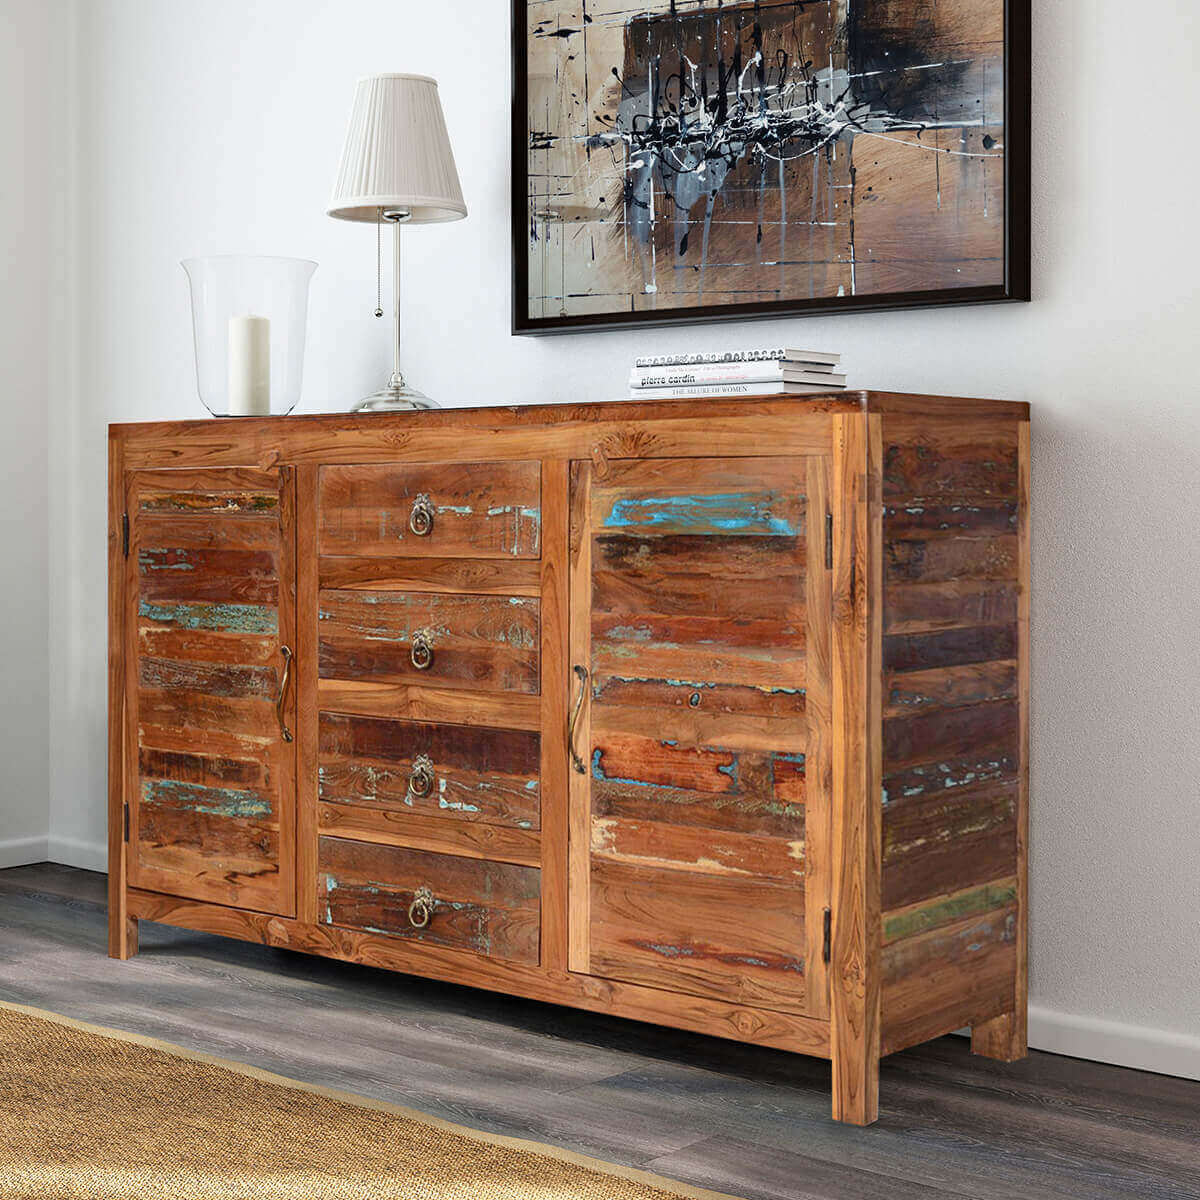 Santa Fe Distressed Rustic Reclaimed Wood 4 Drawer Large Sideboard